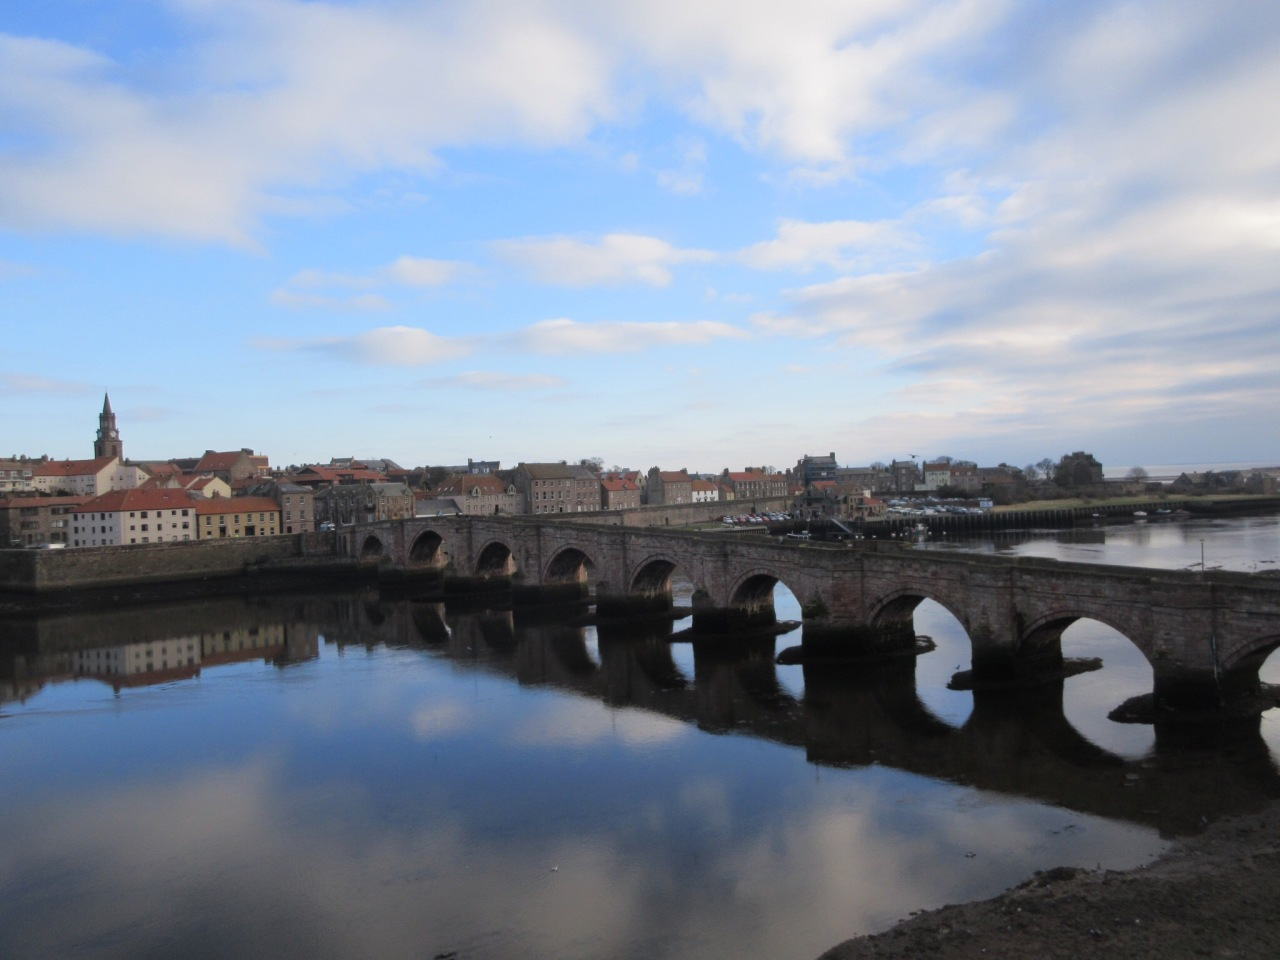 Berwick-upon-Tweed: day-trip of my dreams